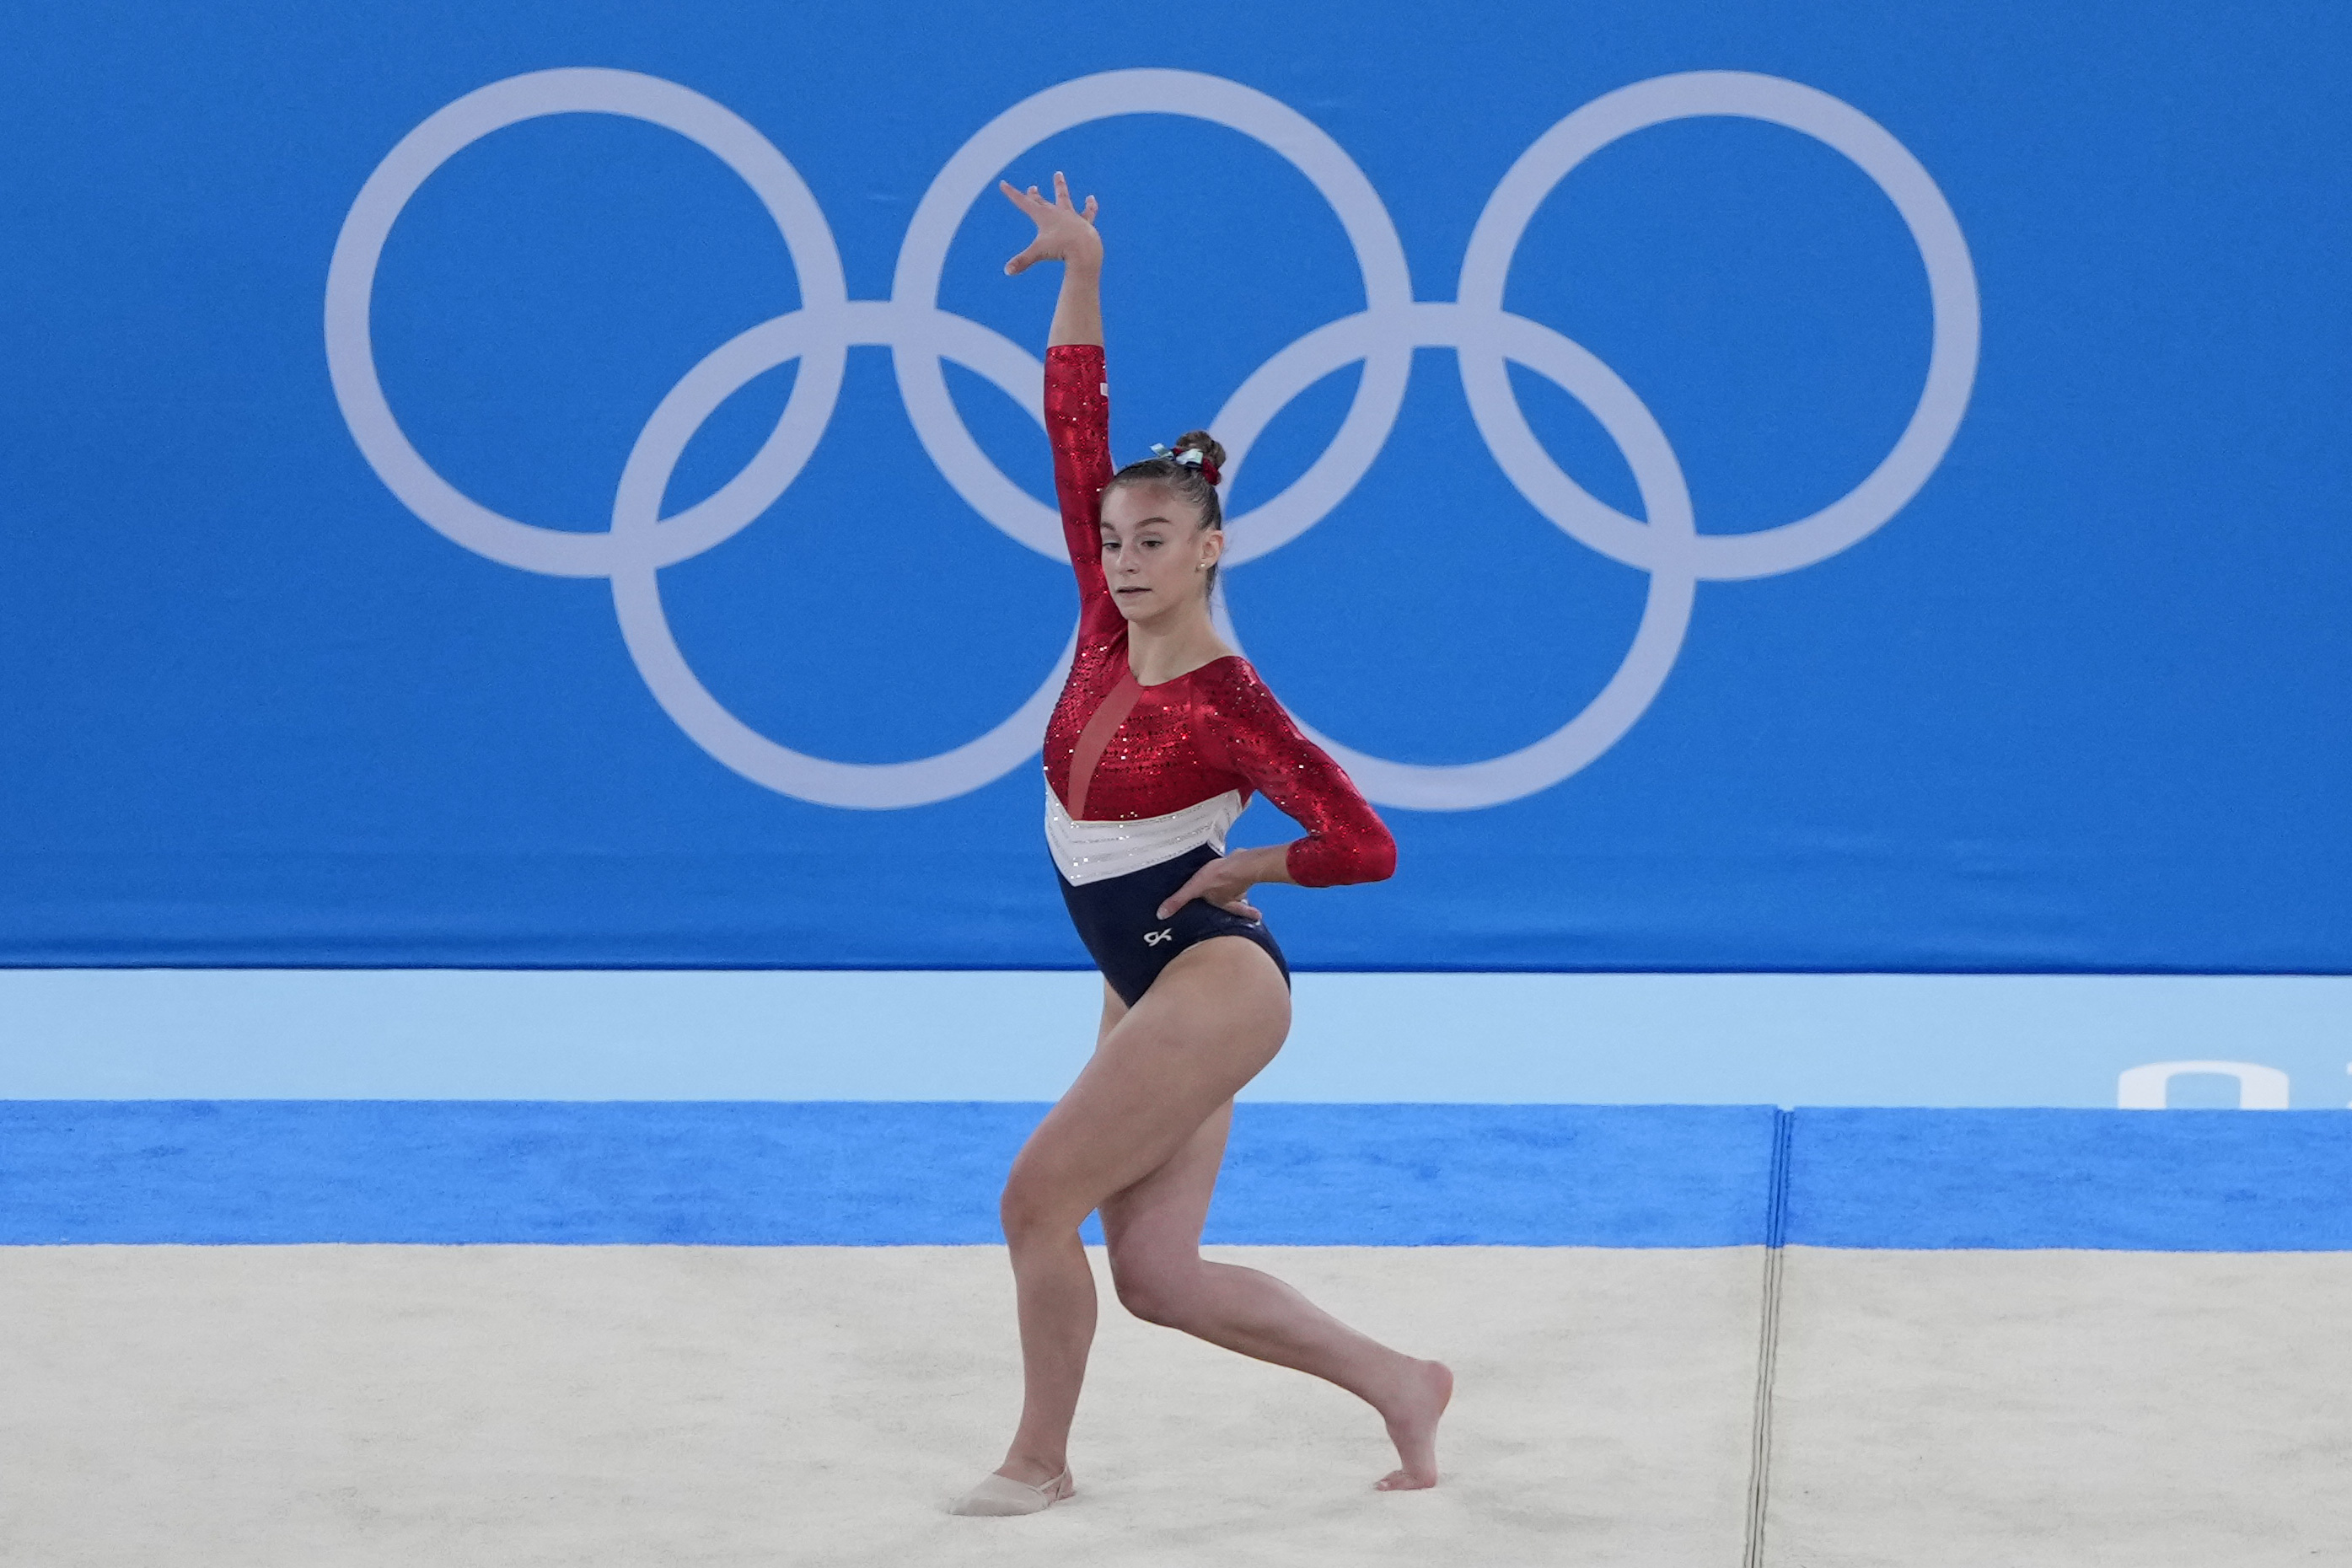 Grace McCallum performs on the floor at the 2020 Summer Olympics.